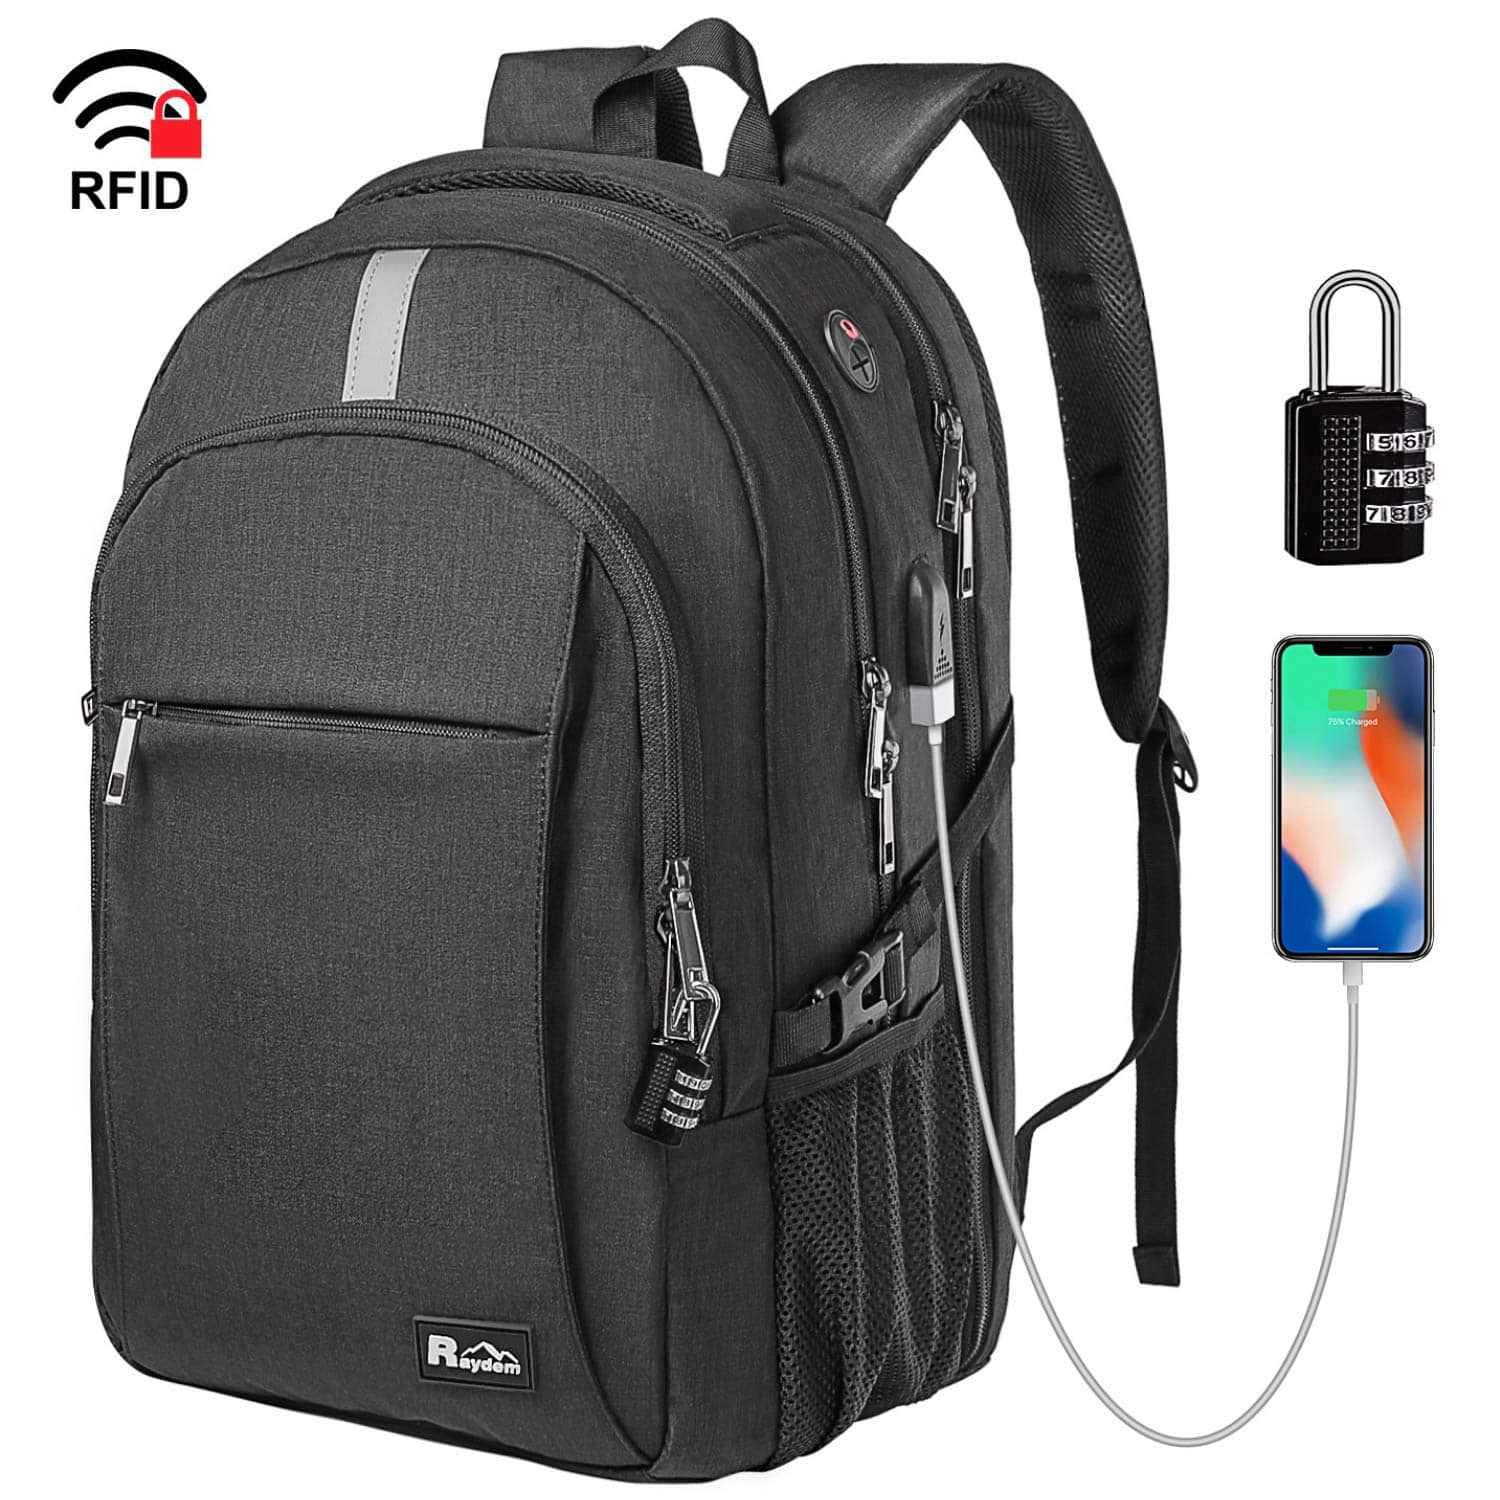 Business Laptop Backpack 60% OFF - 14.79$ $14.79